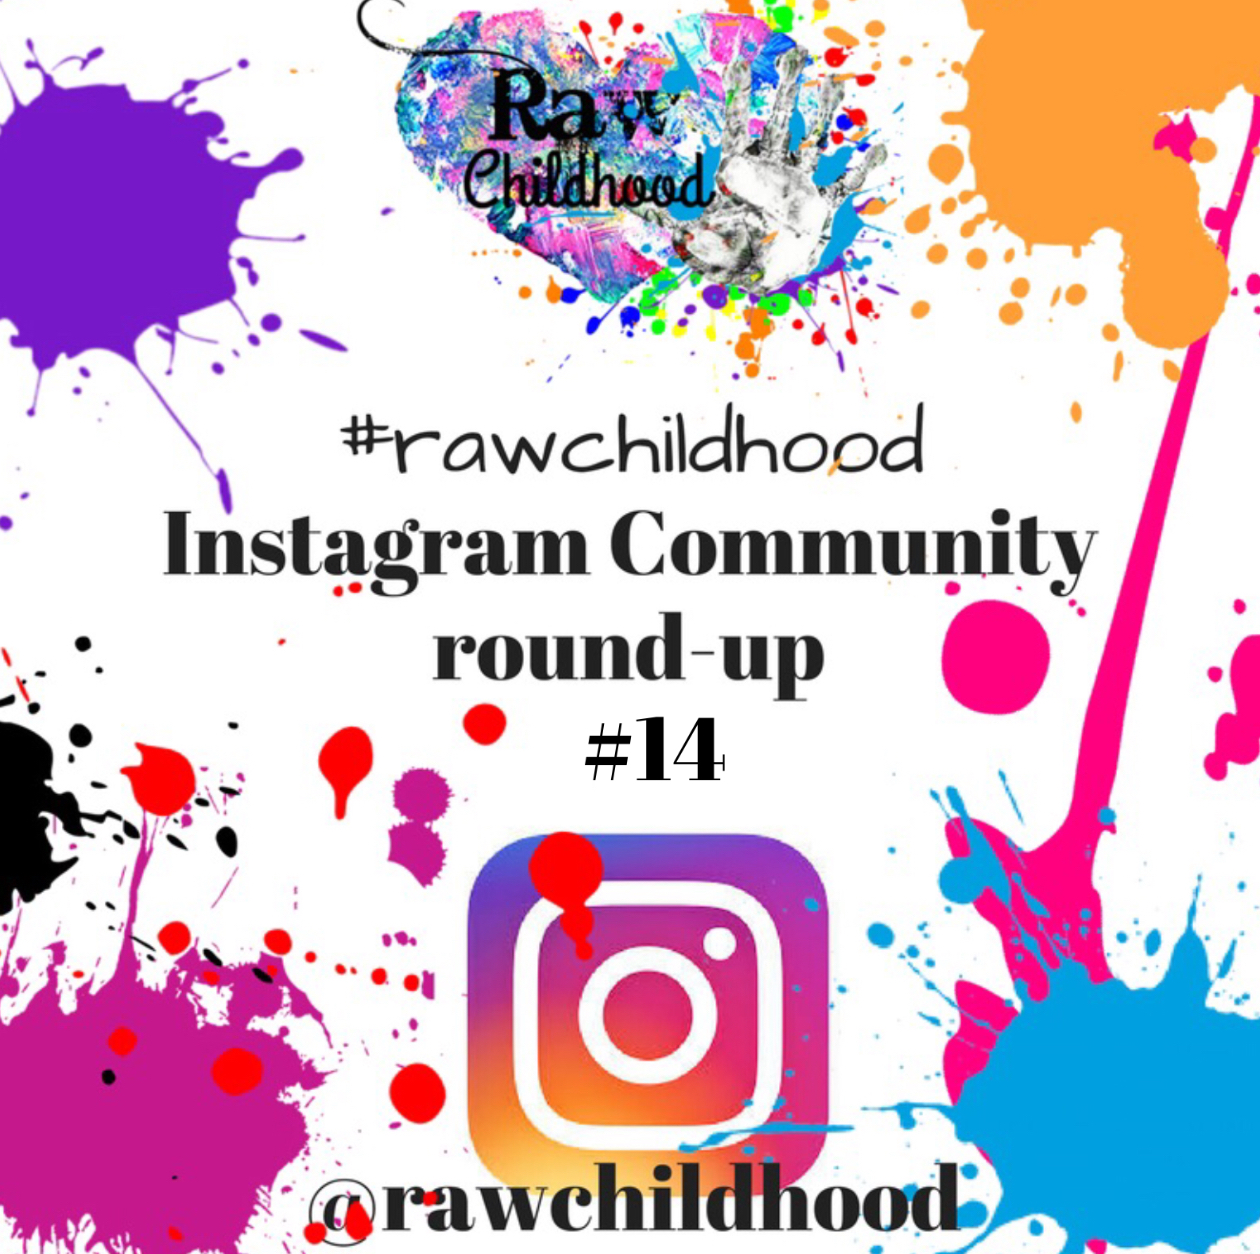 Raw childhood instagram community roundup 14 #rawchildhood